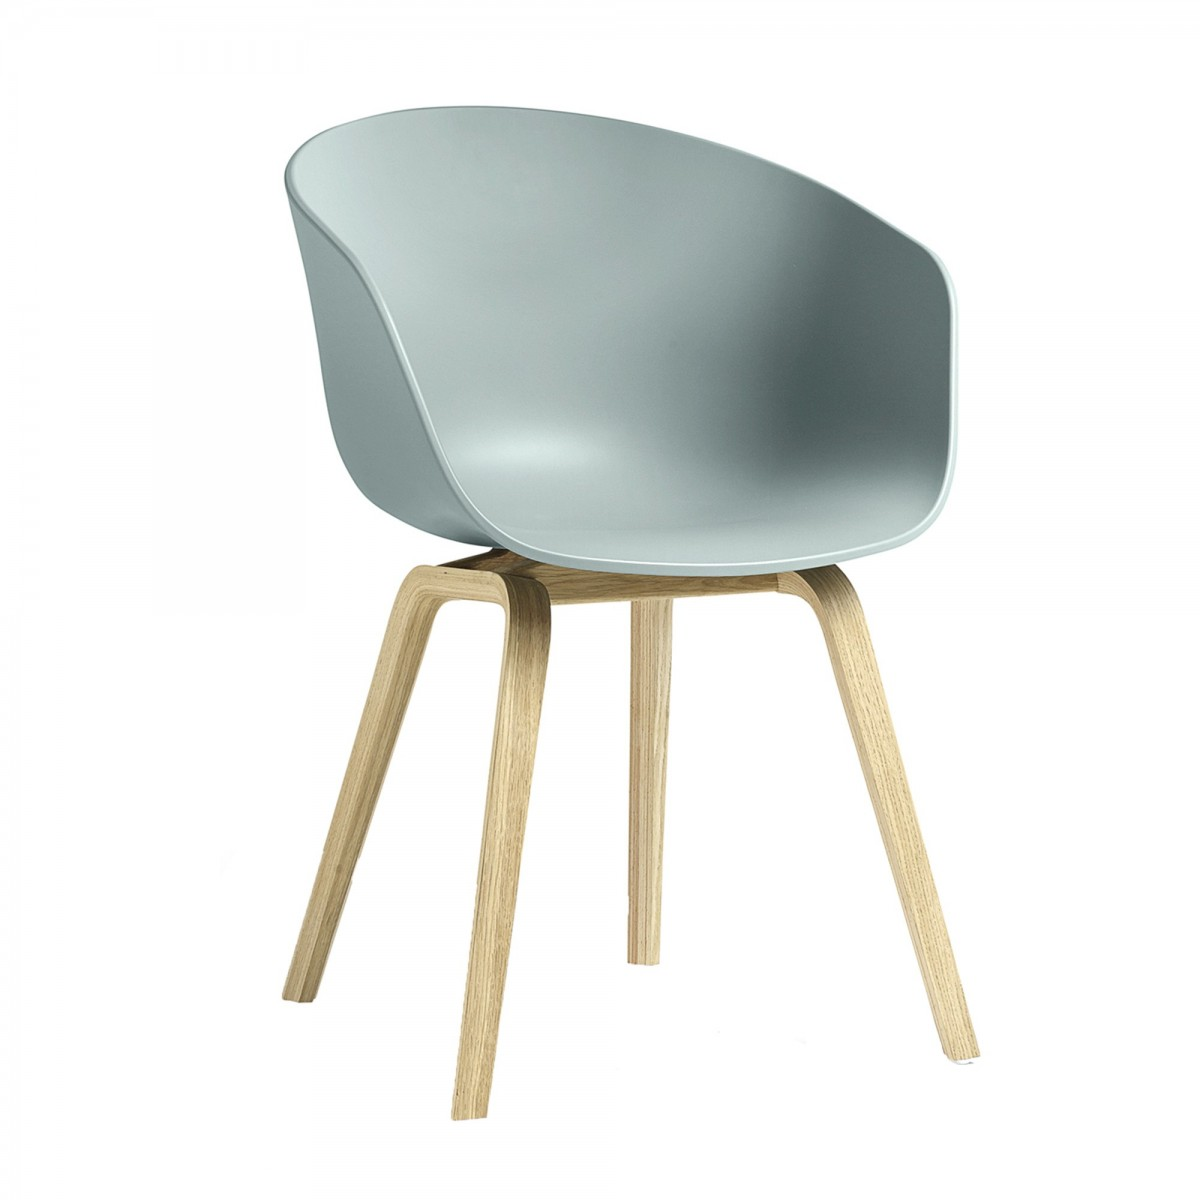 AAC 22 Dusty Blue Chair In Oak And Polypropylene Shell HAY